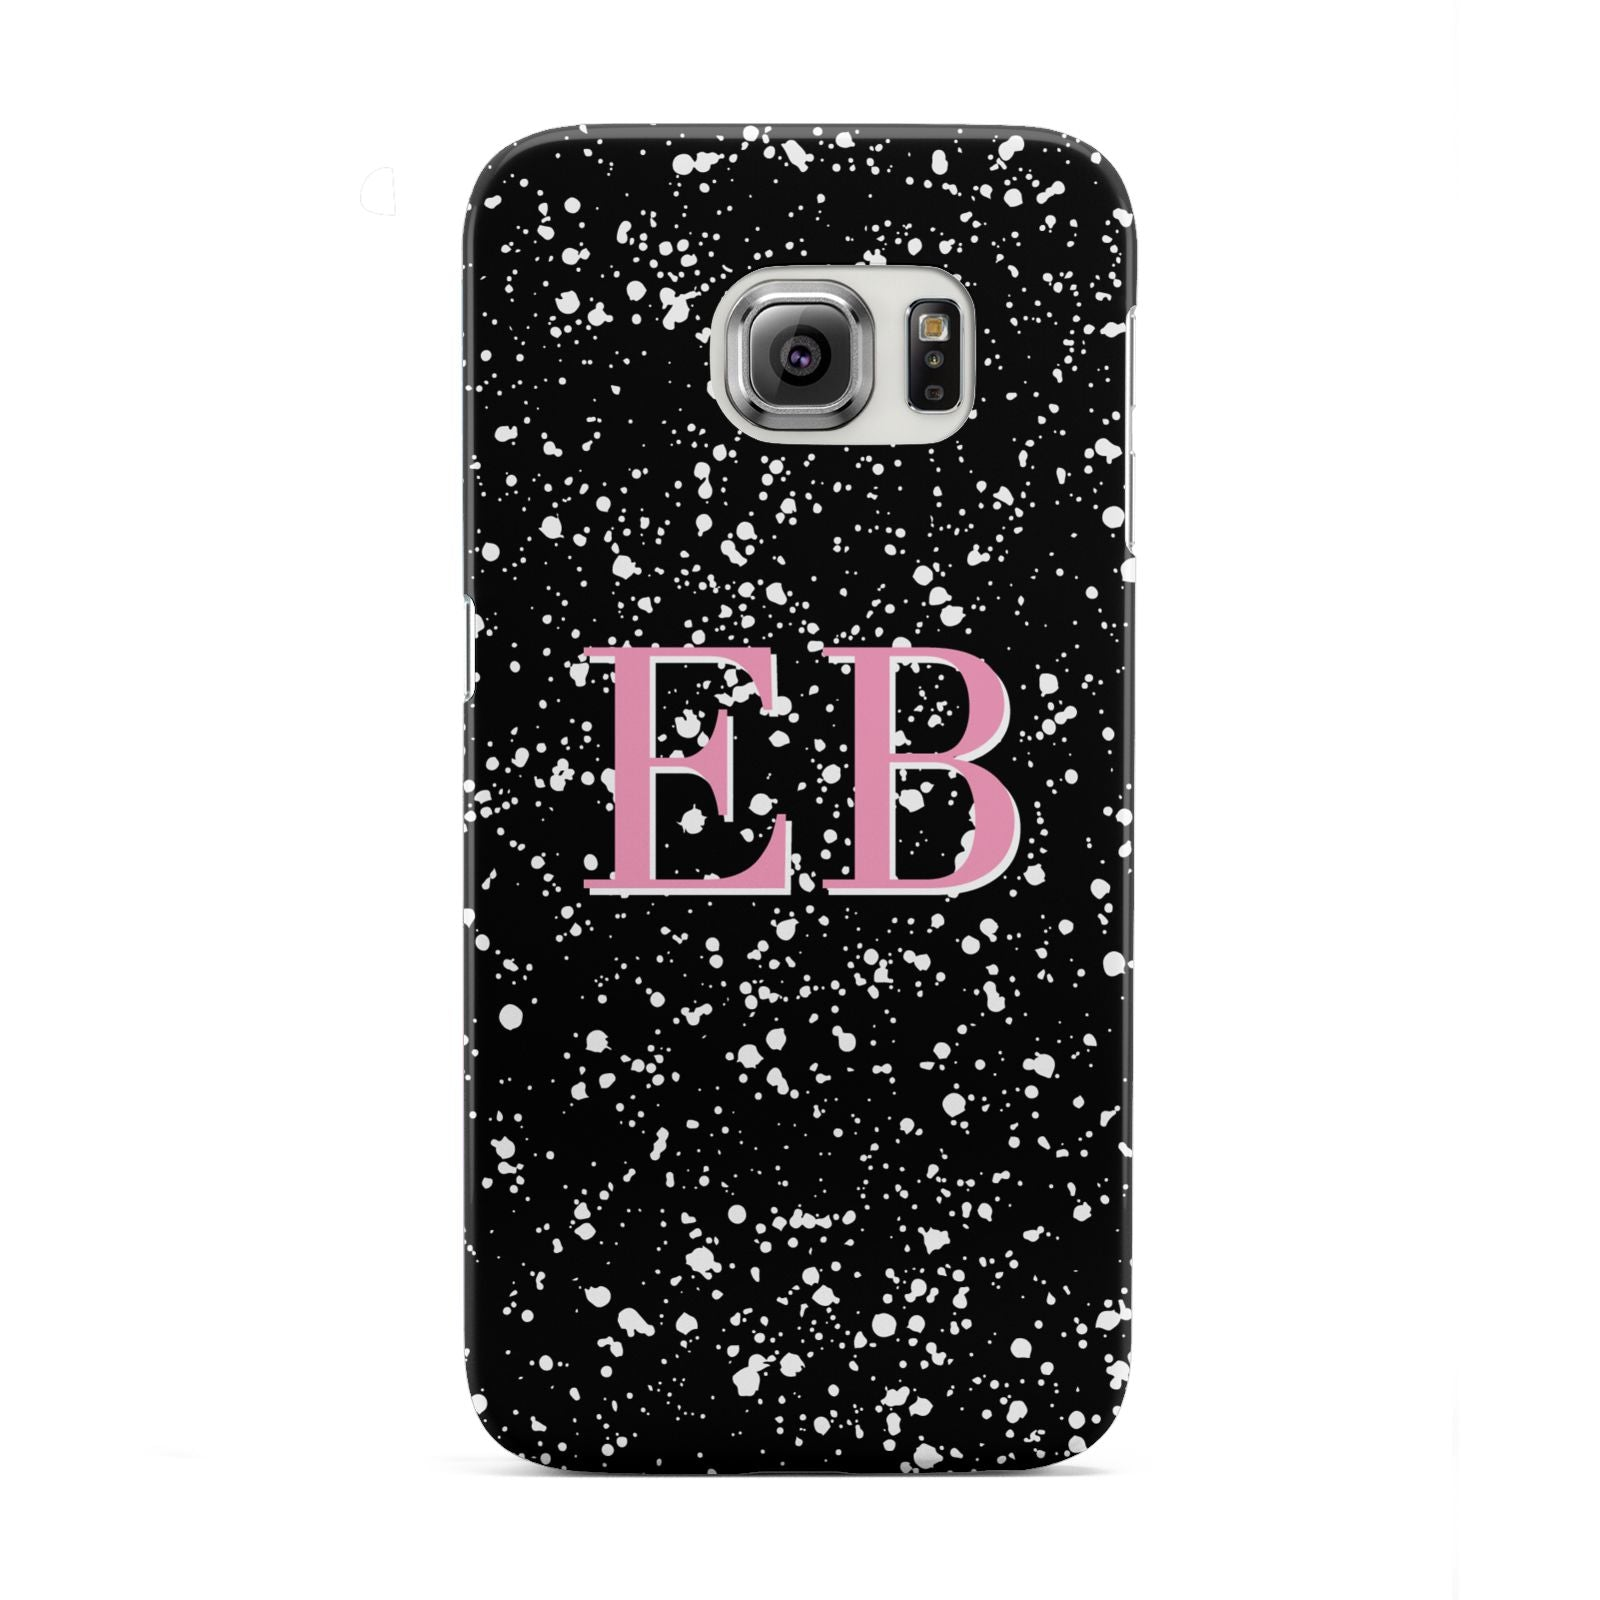 Personalised Black Ink Splat Initials Samsung Galaxy S6 Edge Case